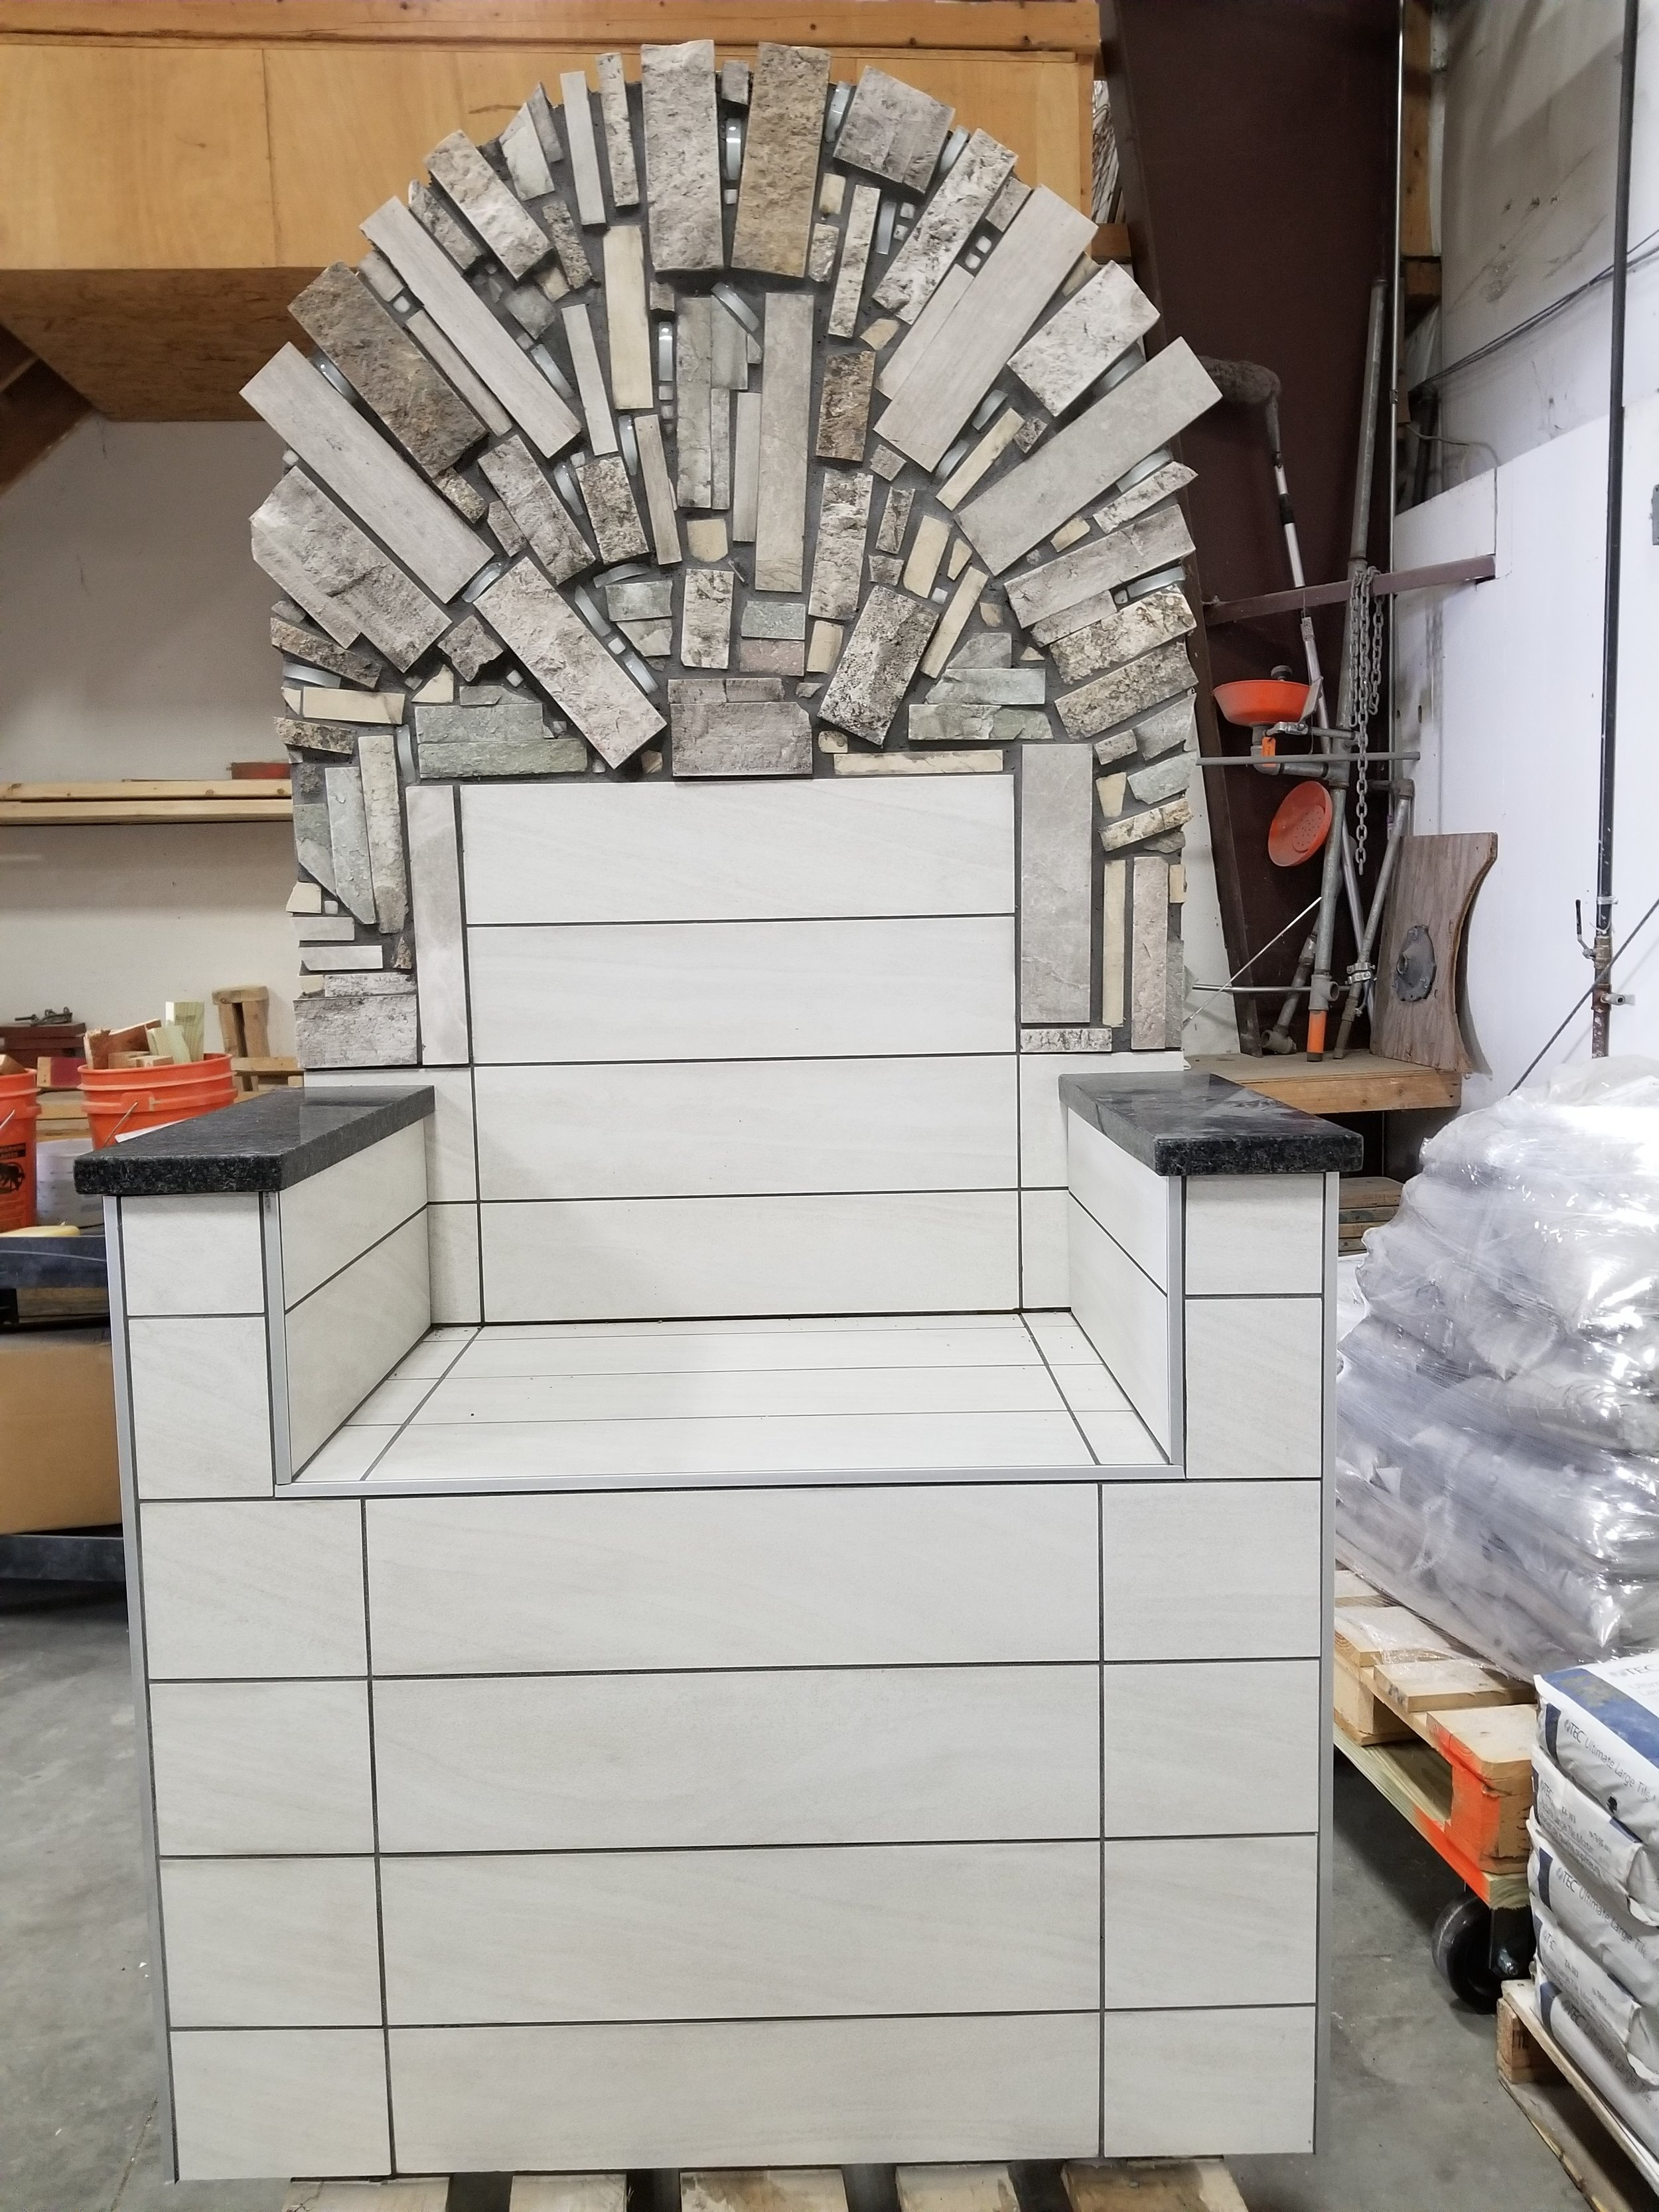 The completed Tile Throne